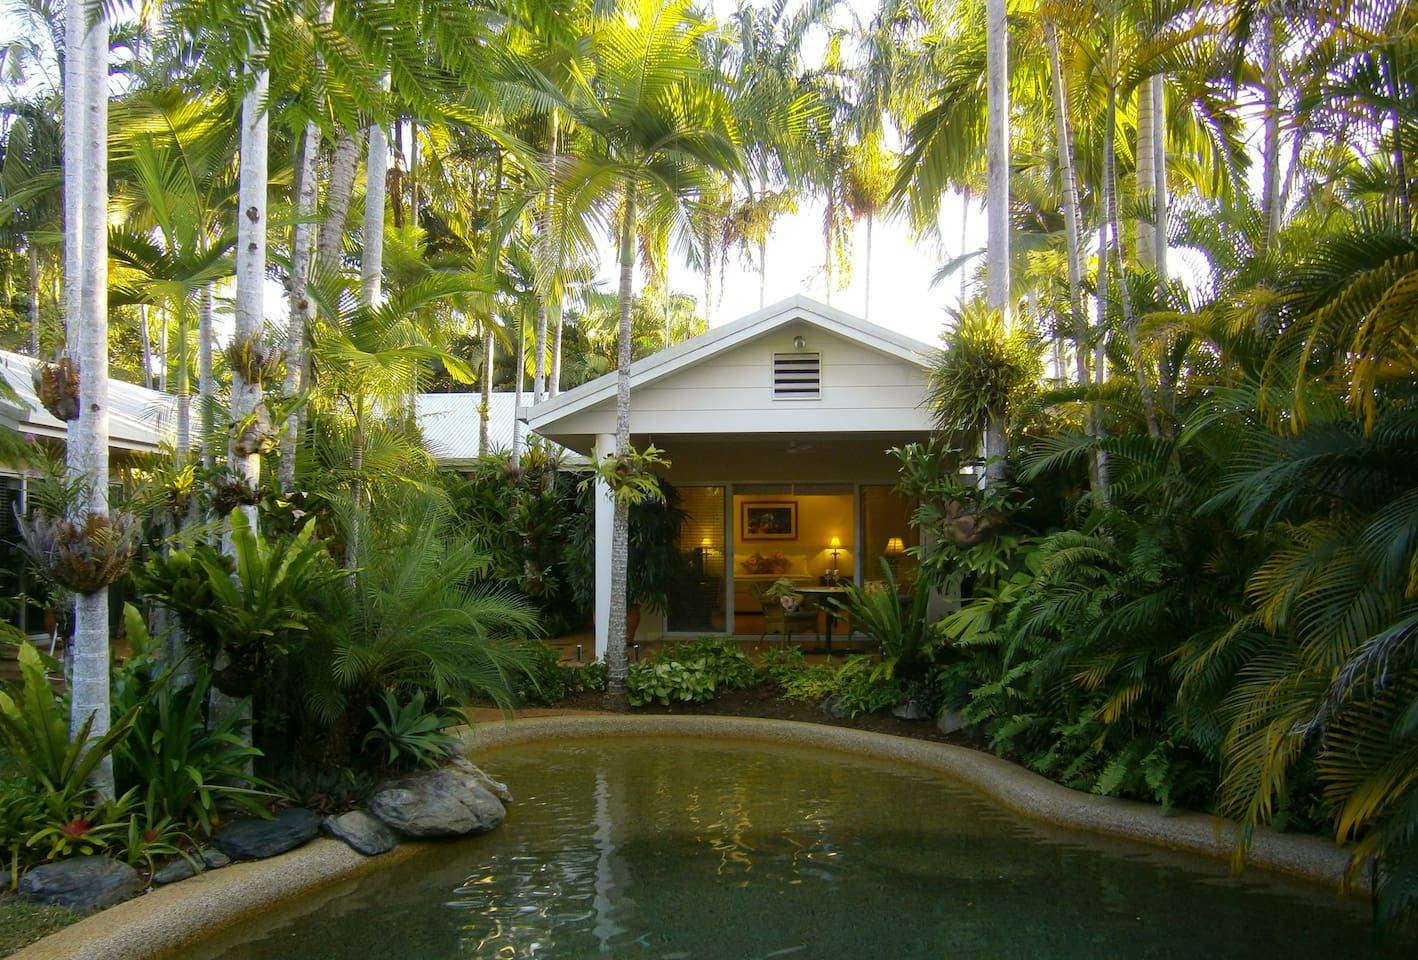 Paradise Villa - your own private resort, just for two.